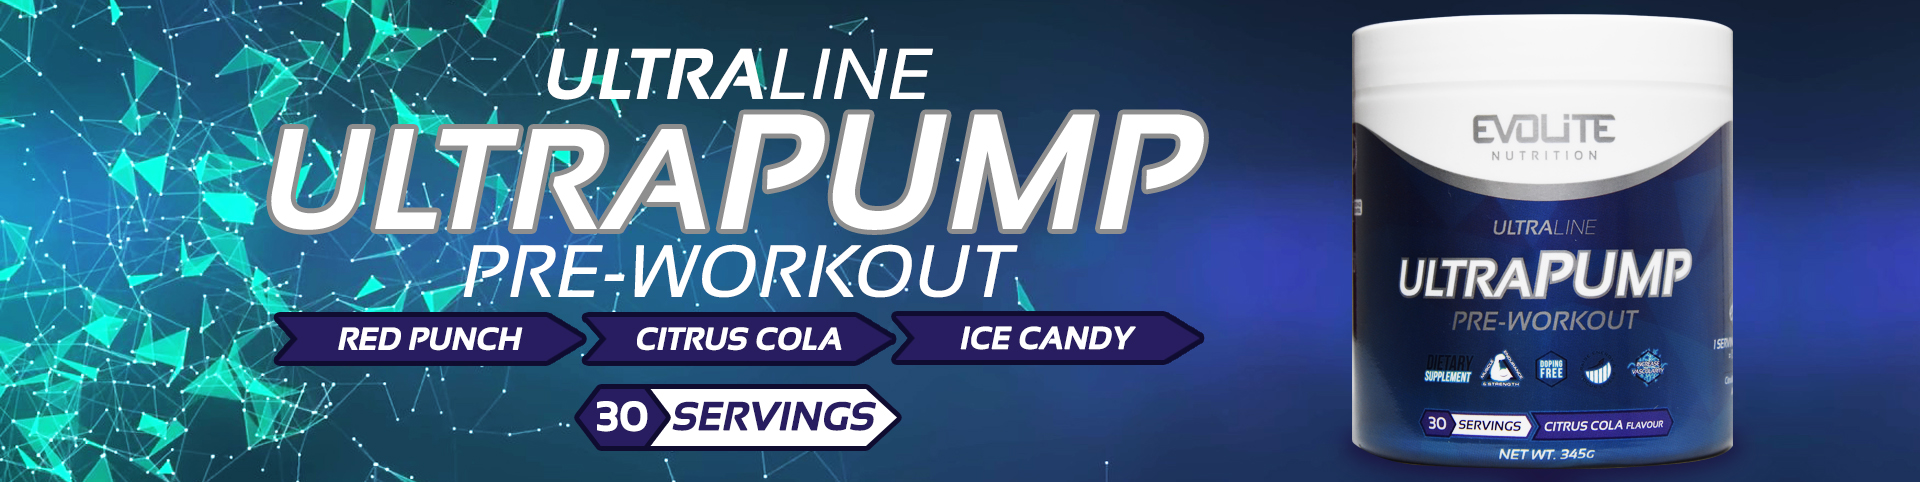 Ultra pump pre-workout